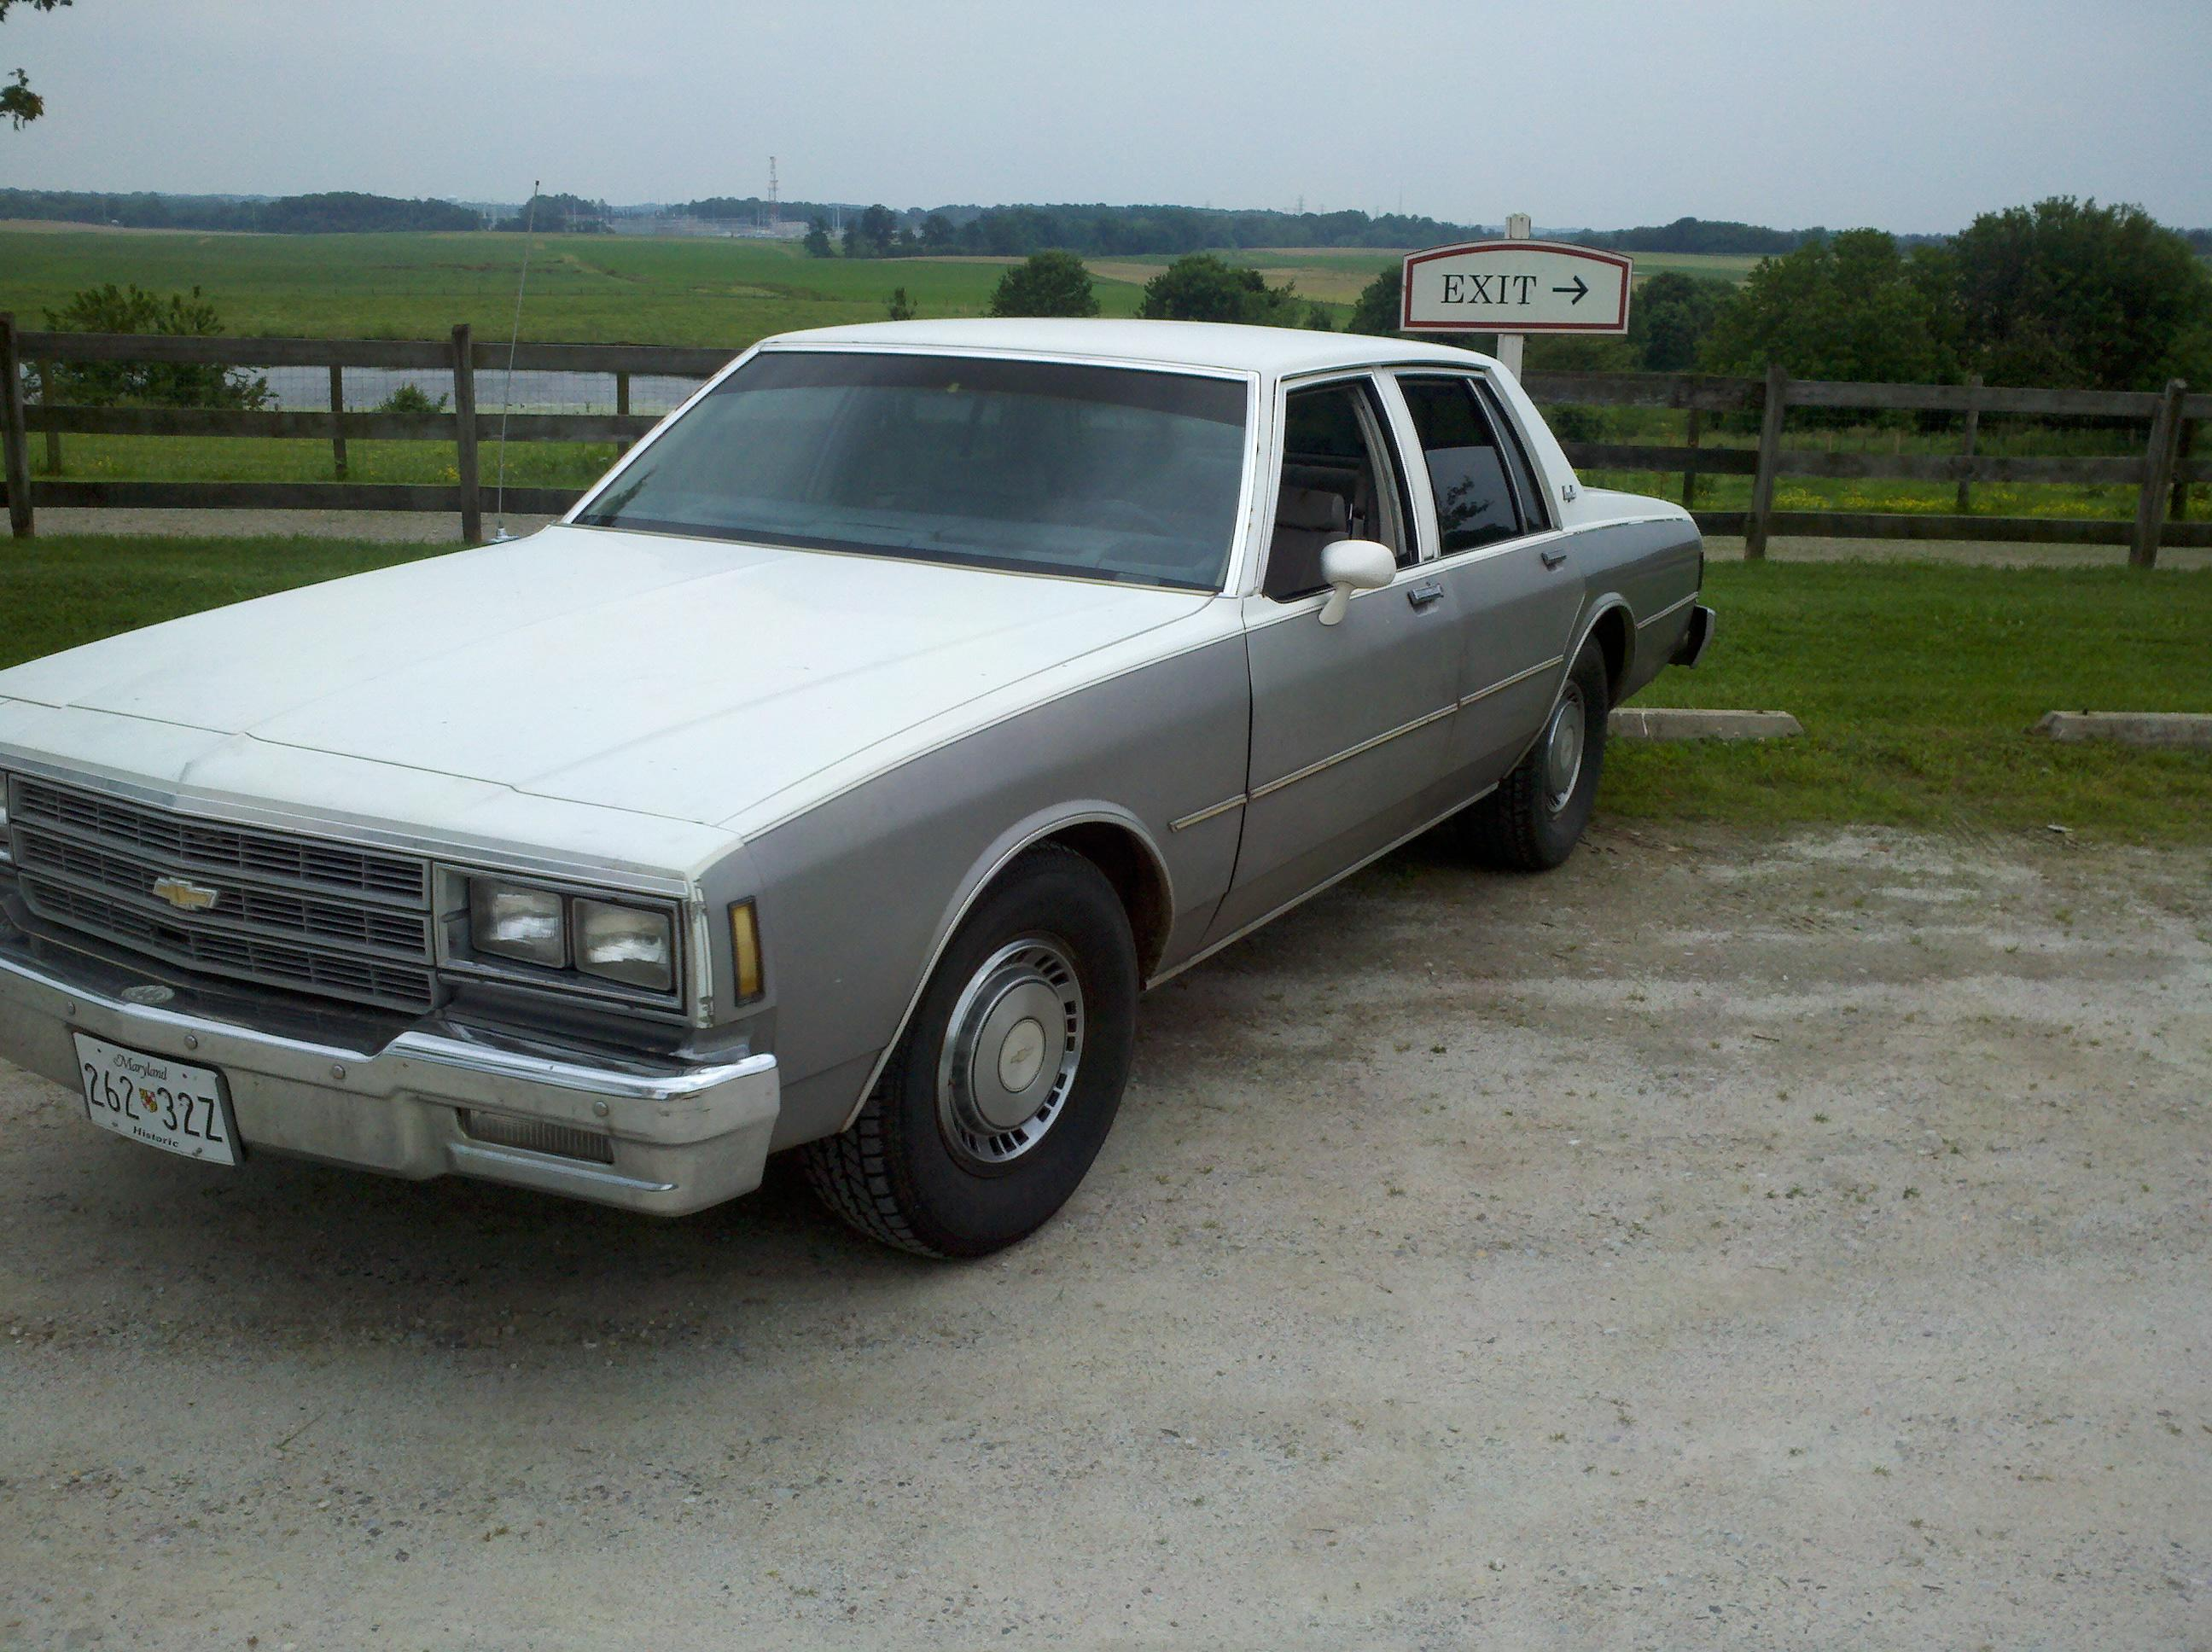 1983 Monte Carlo >> 83clow 1983 Chevrolet Impala Specs, Photos, Modification Info at CarDomain